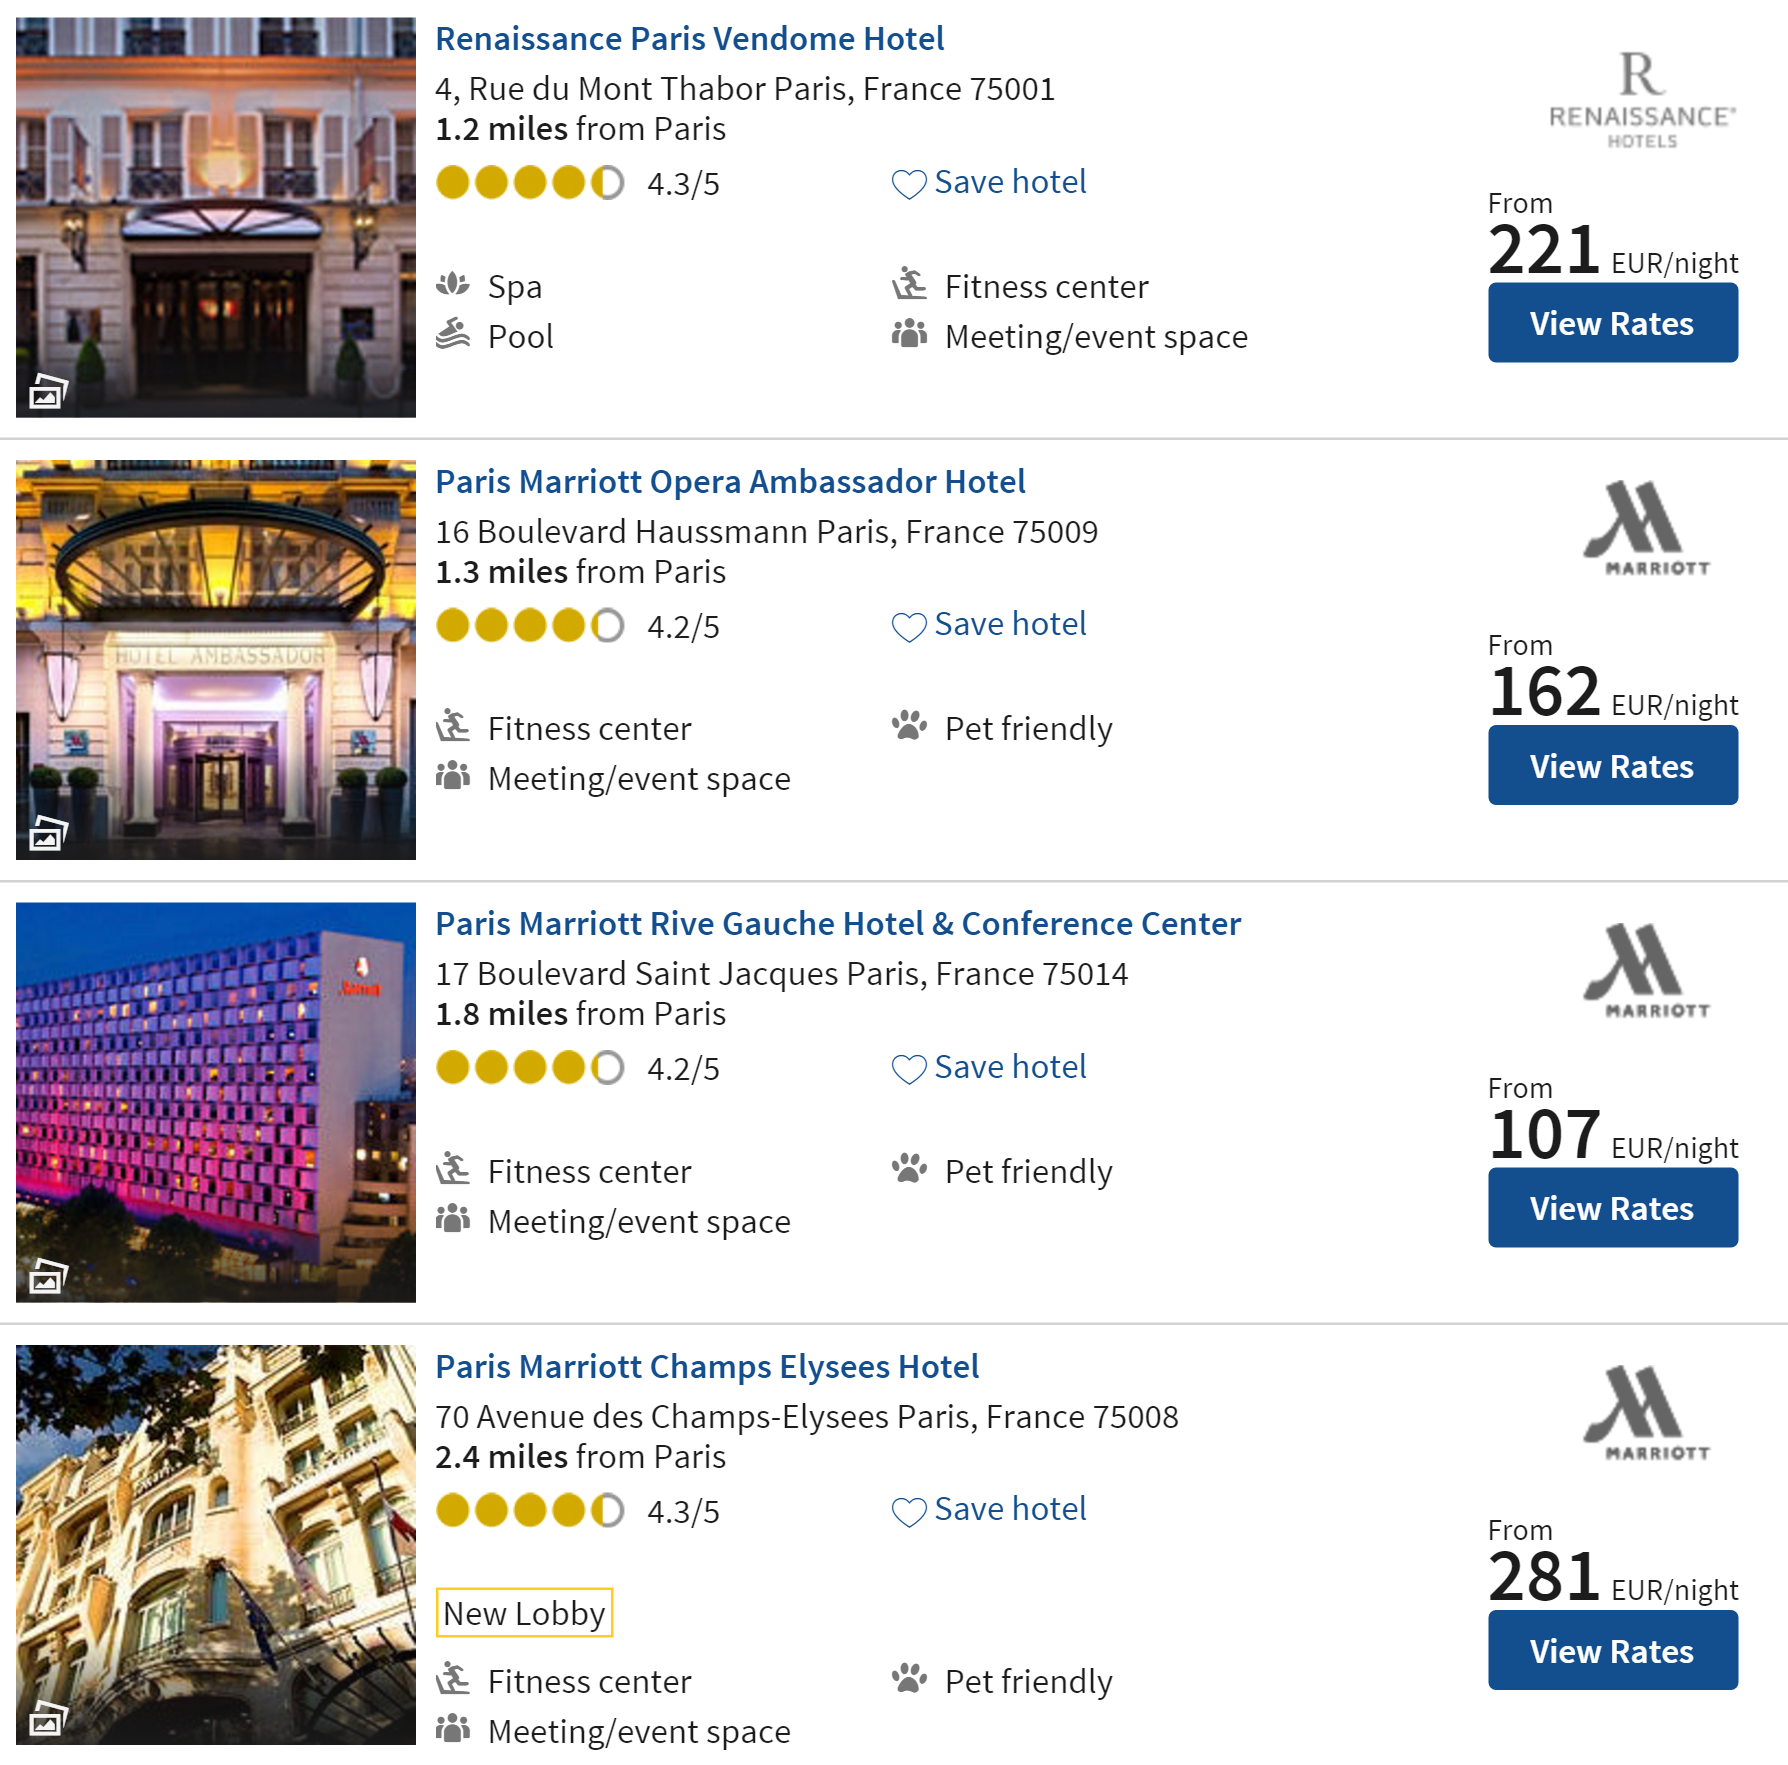 2015-december-marriott-discount-paris